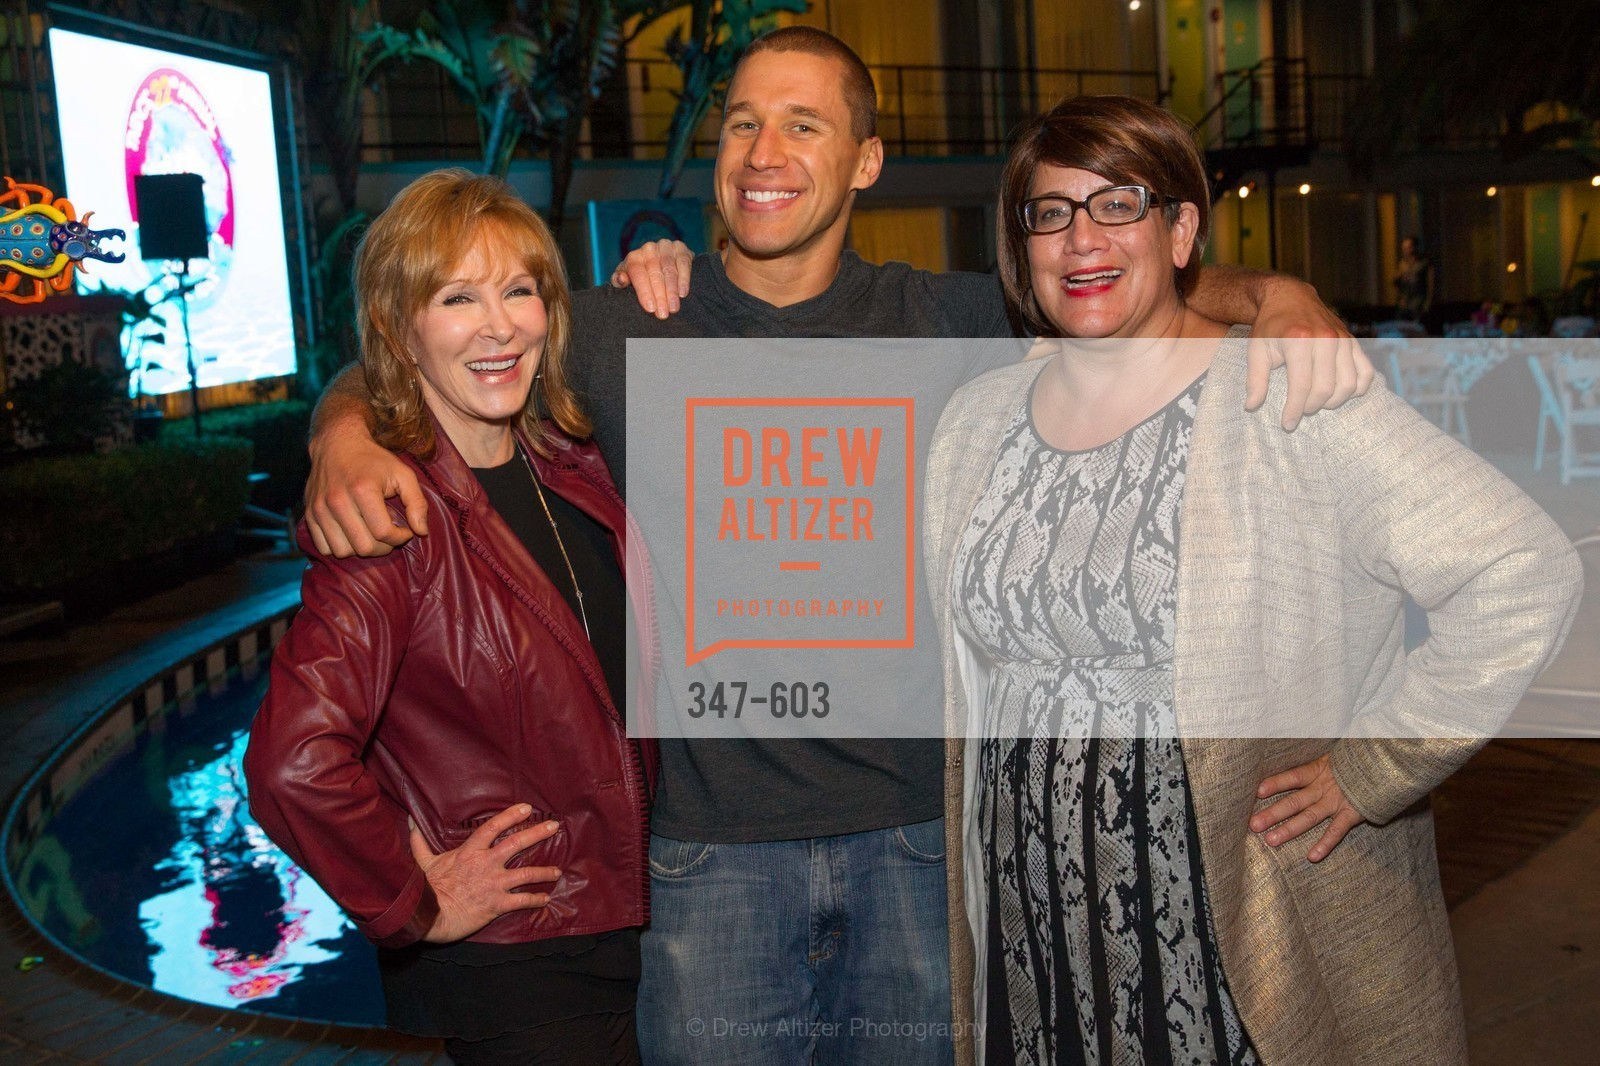 Cheryl Jennings, AJ Kirsch, 22nd Annual TNDC CELEBRITY POOL TOSS, US, October 9th, 2014,Drew Altizer, Drew Altizer Photography, full-service agency, private events, San Francisco photographer, photographer california